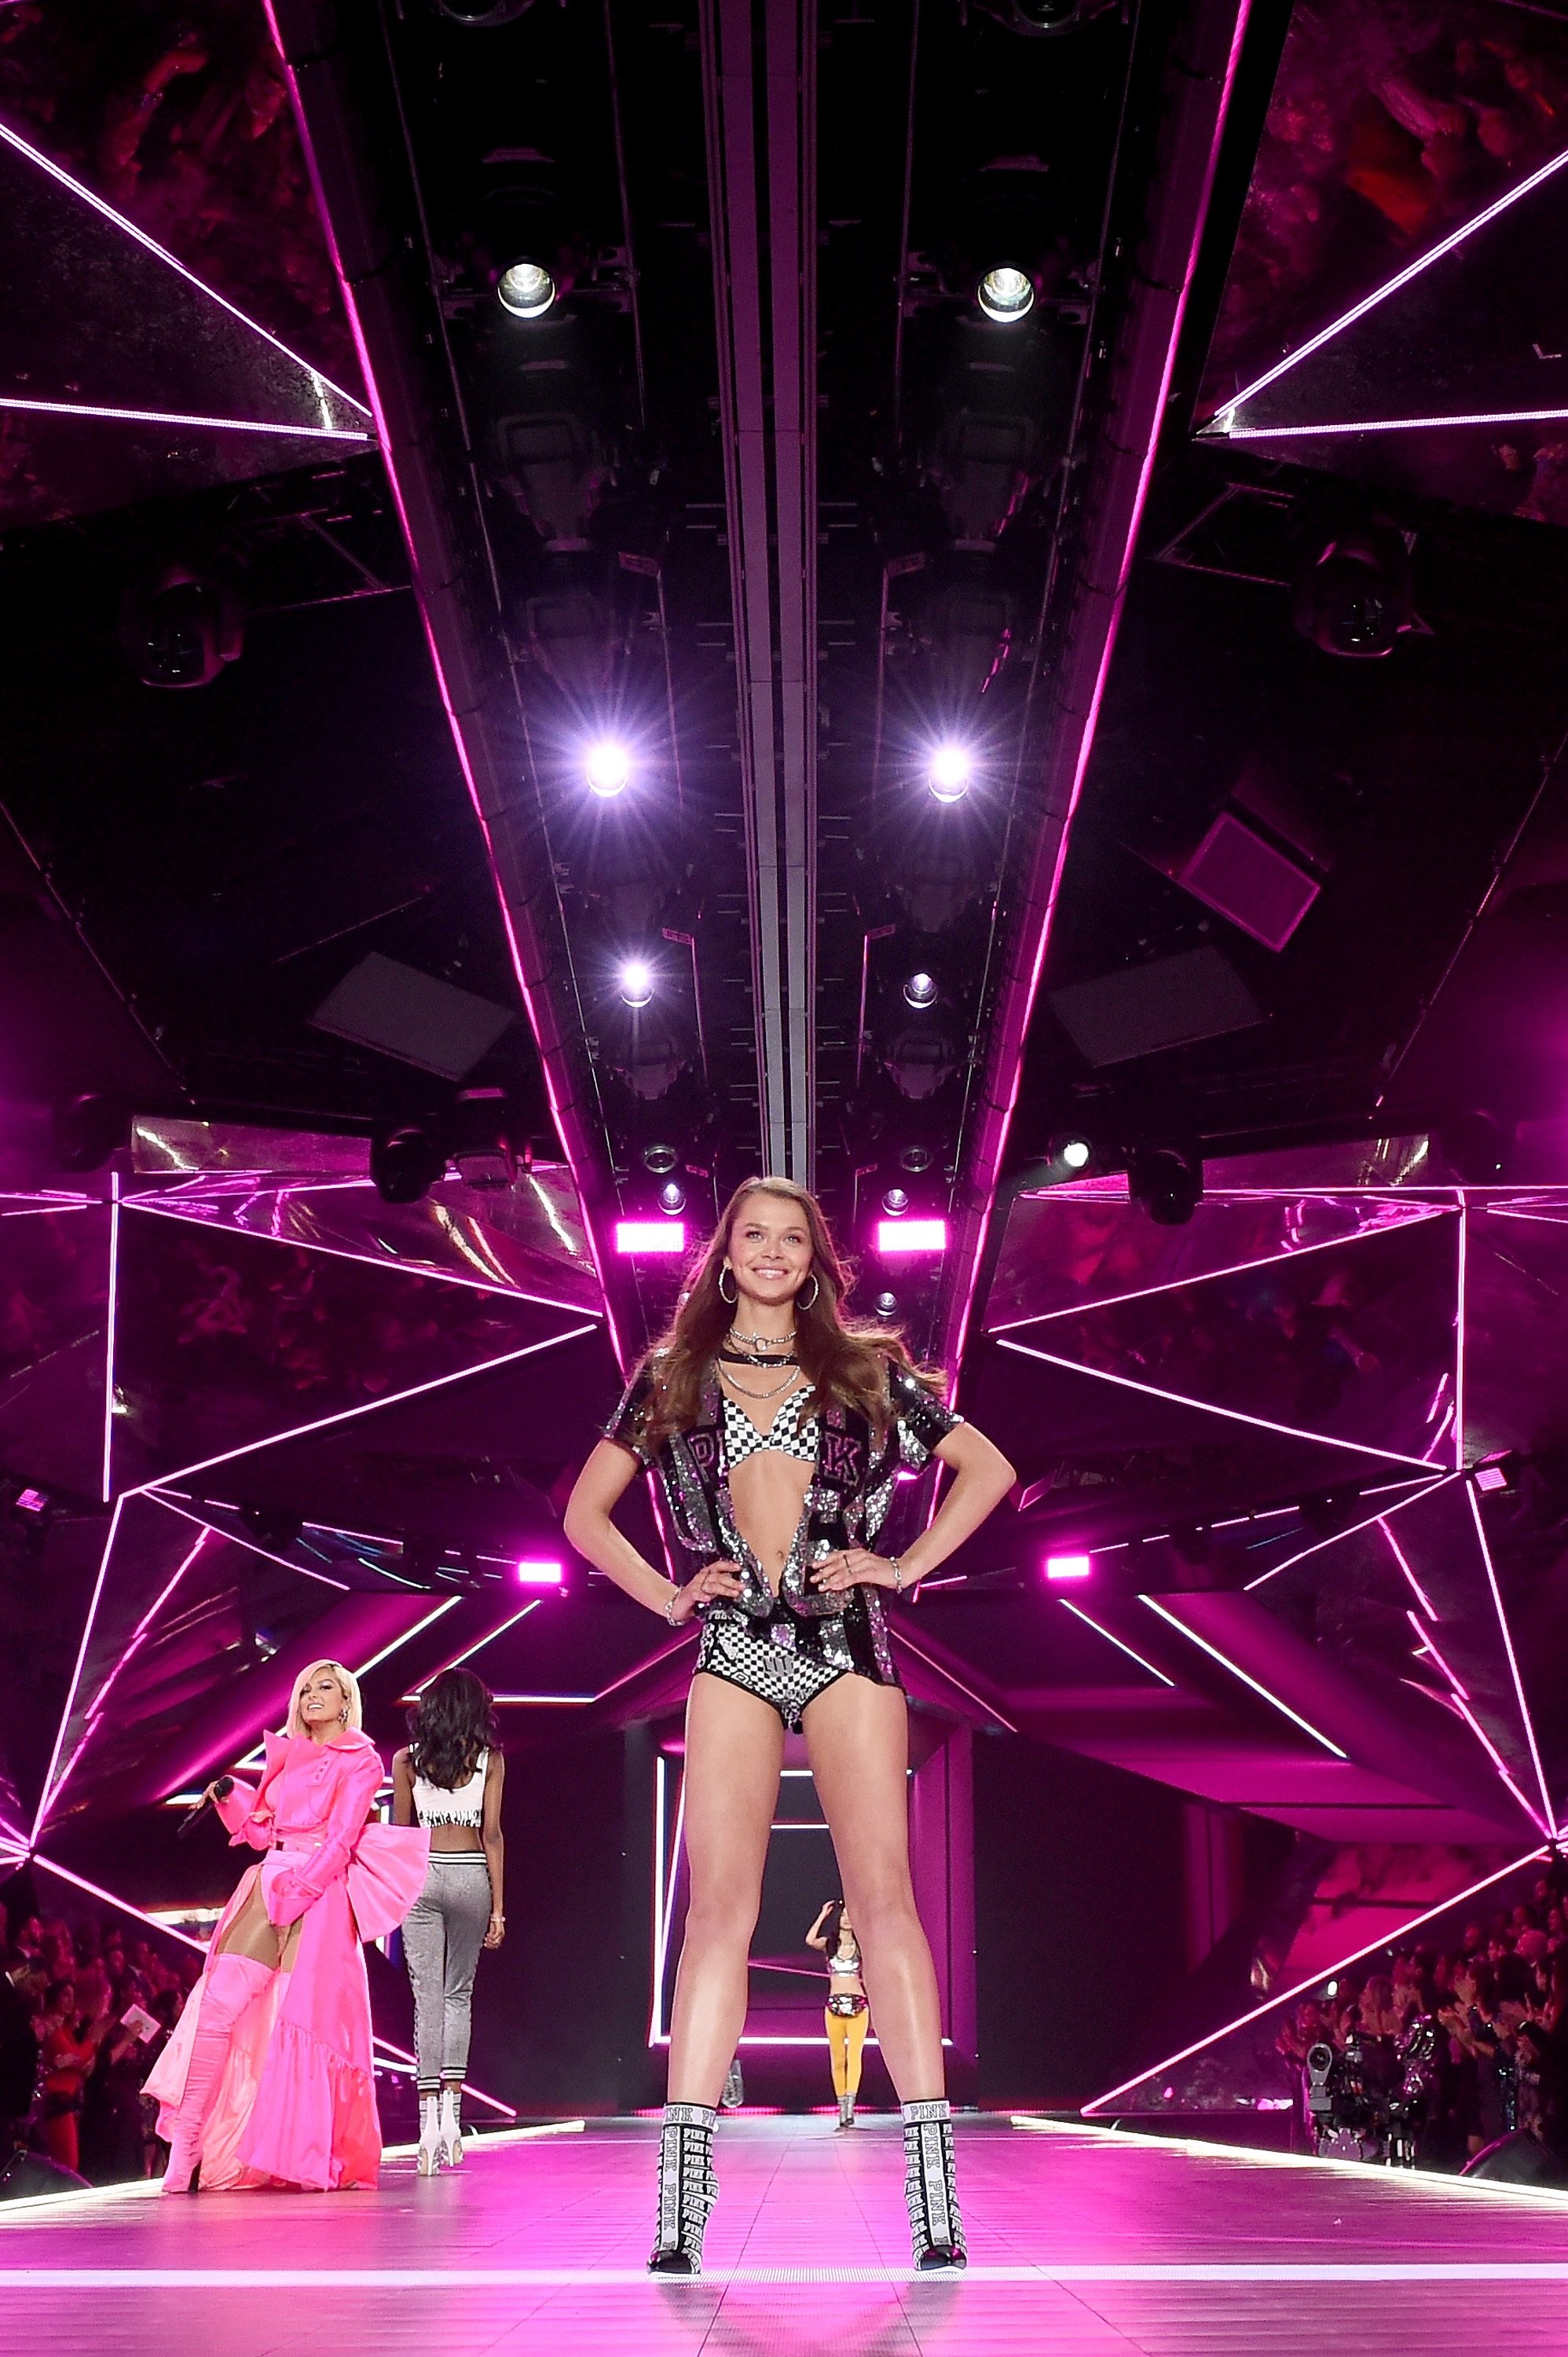 Beautiful Victoria's Secret Model Alannah Walton Modeling For The Victoria's Secret Fashion Show PINK Theme.